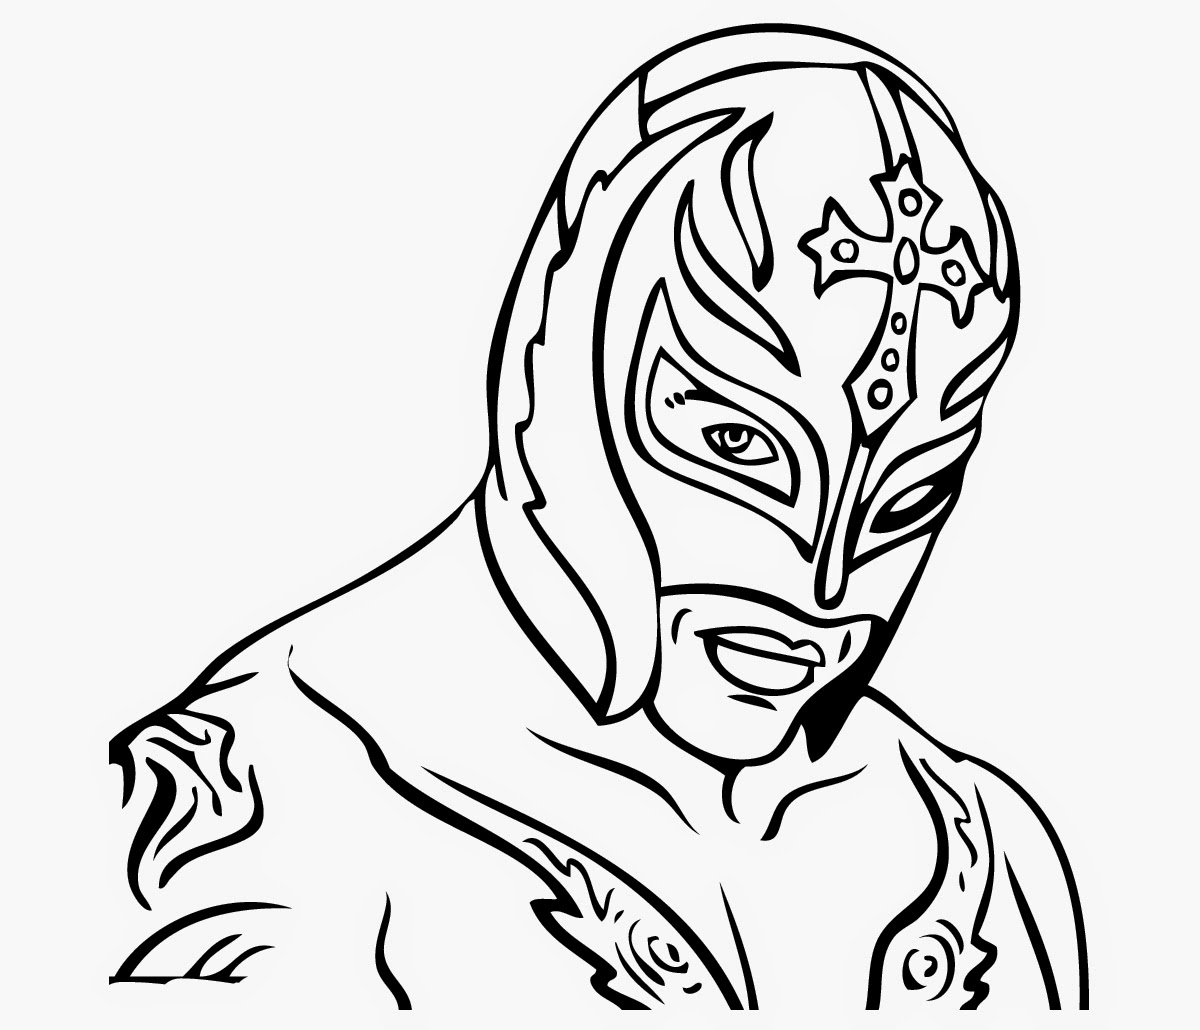 coloring pages wwe wwe wrestler coloring pages coloring home coloring wwe pages